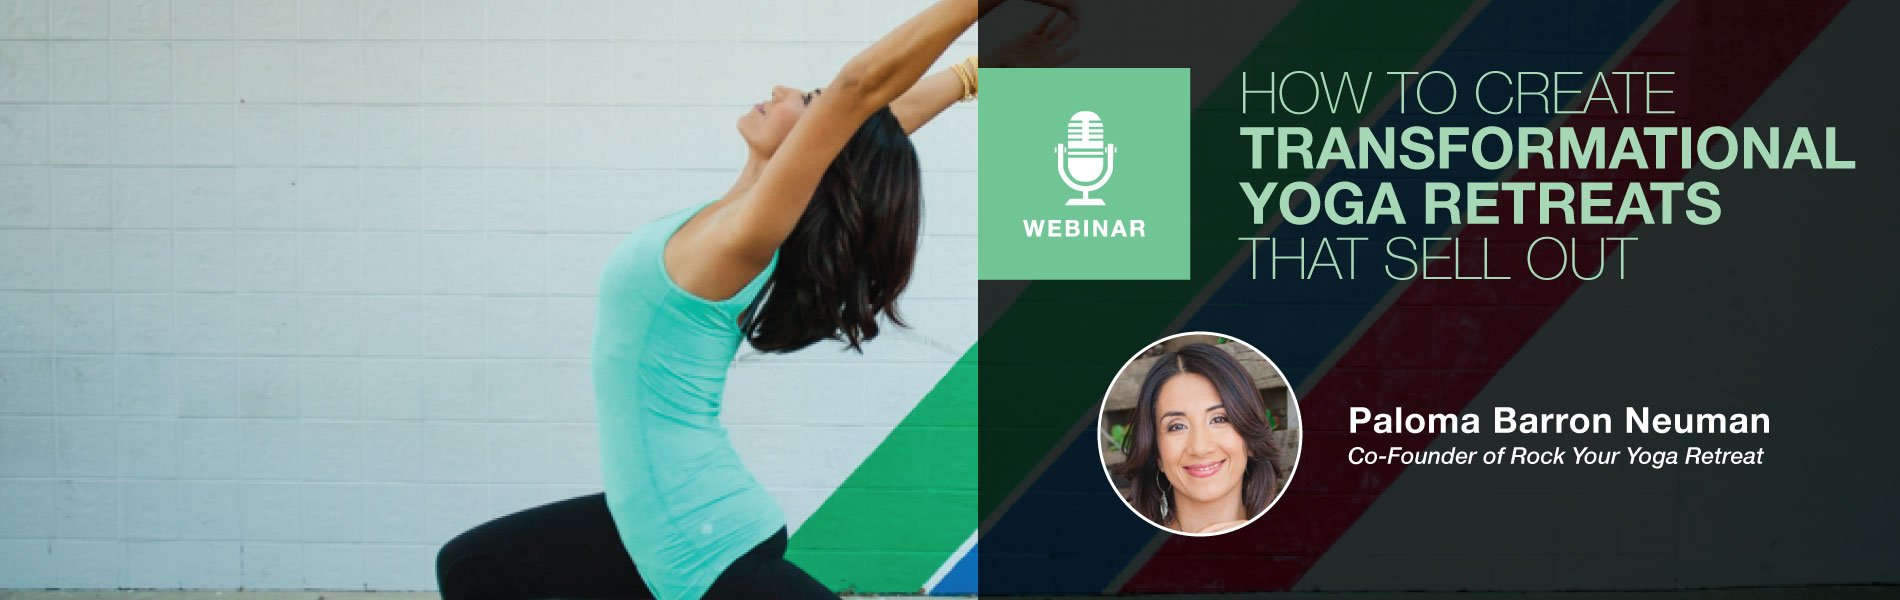 How to Create Transformational Yoga Retreats that Sell Out